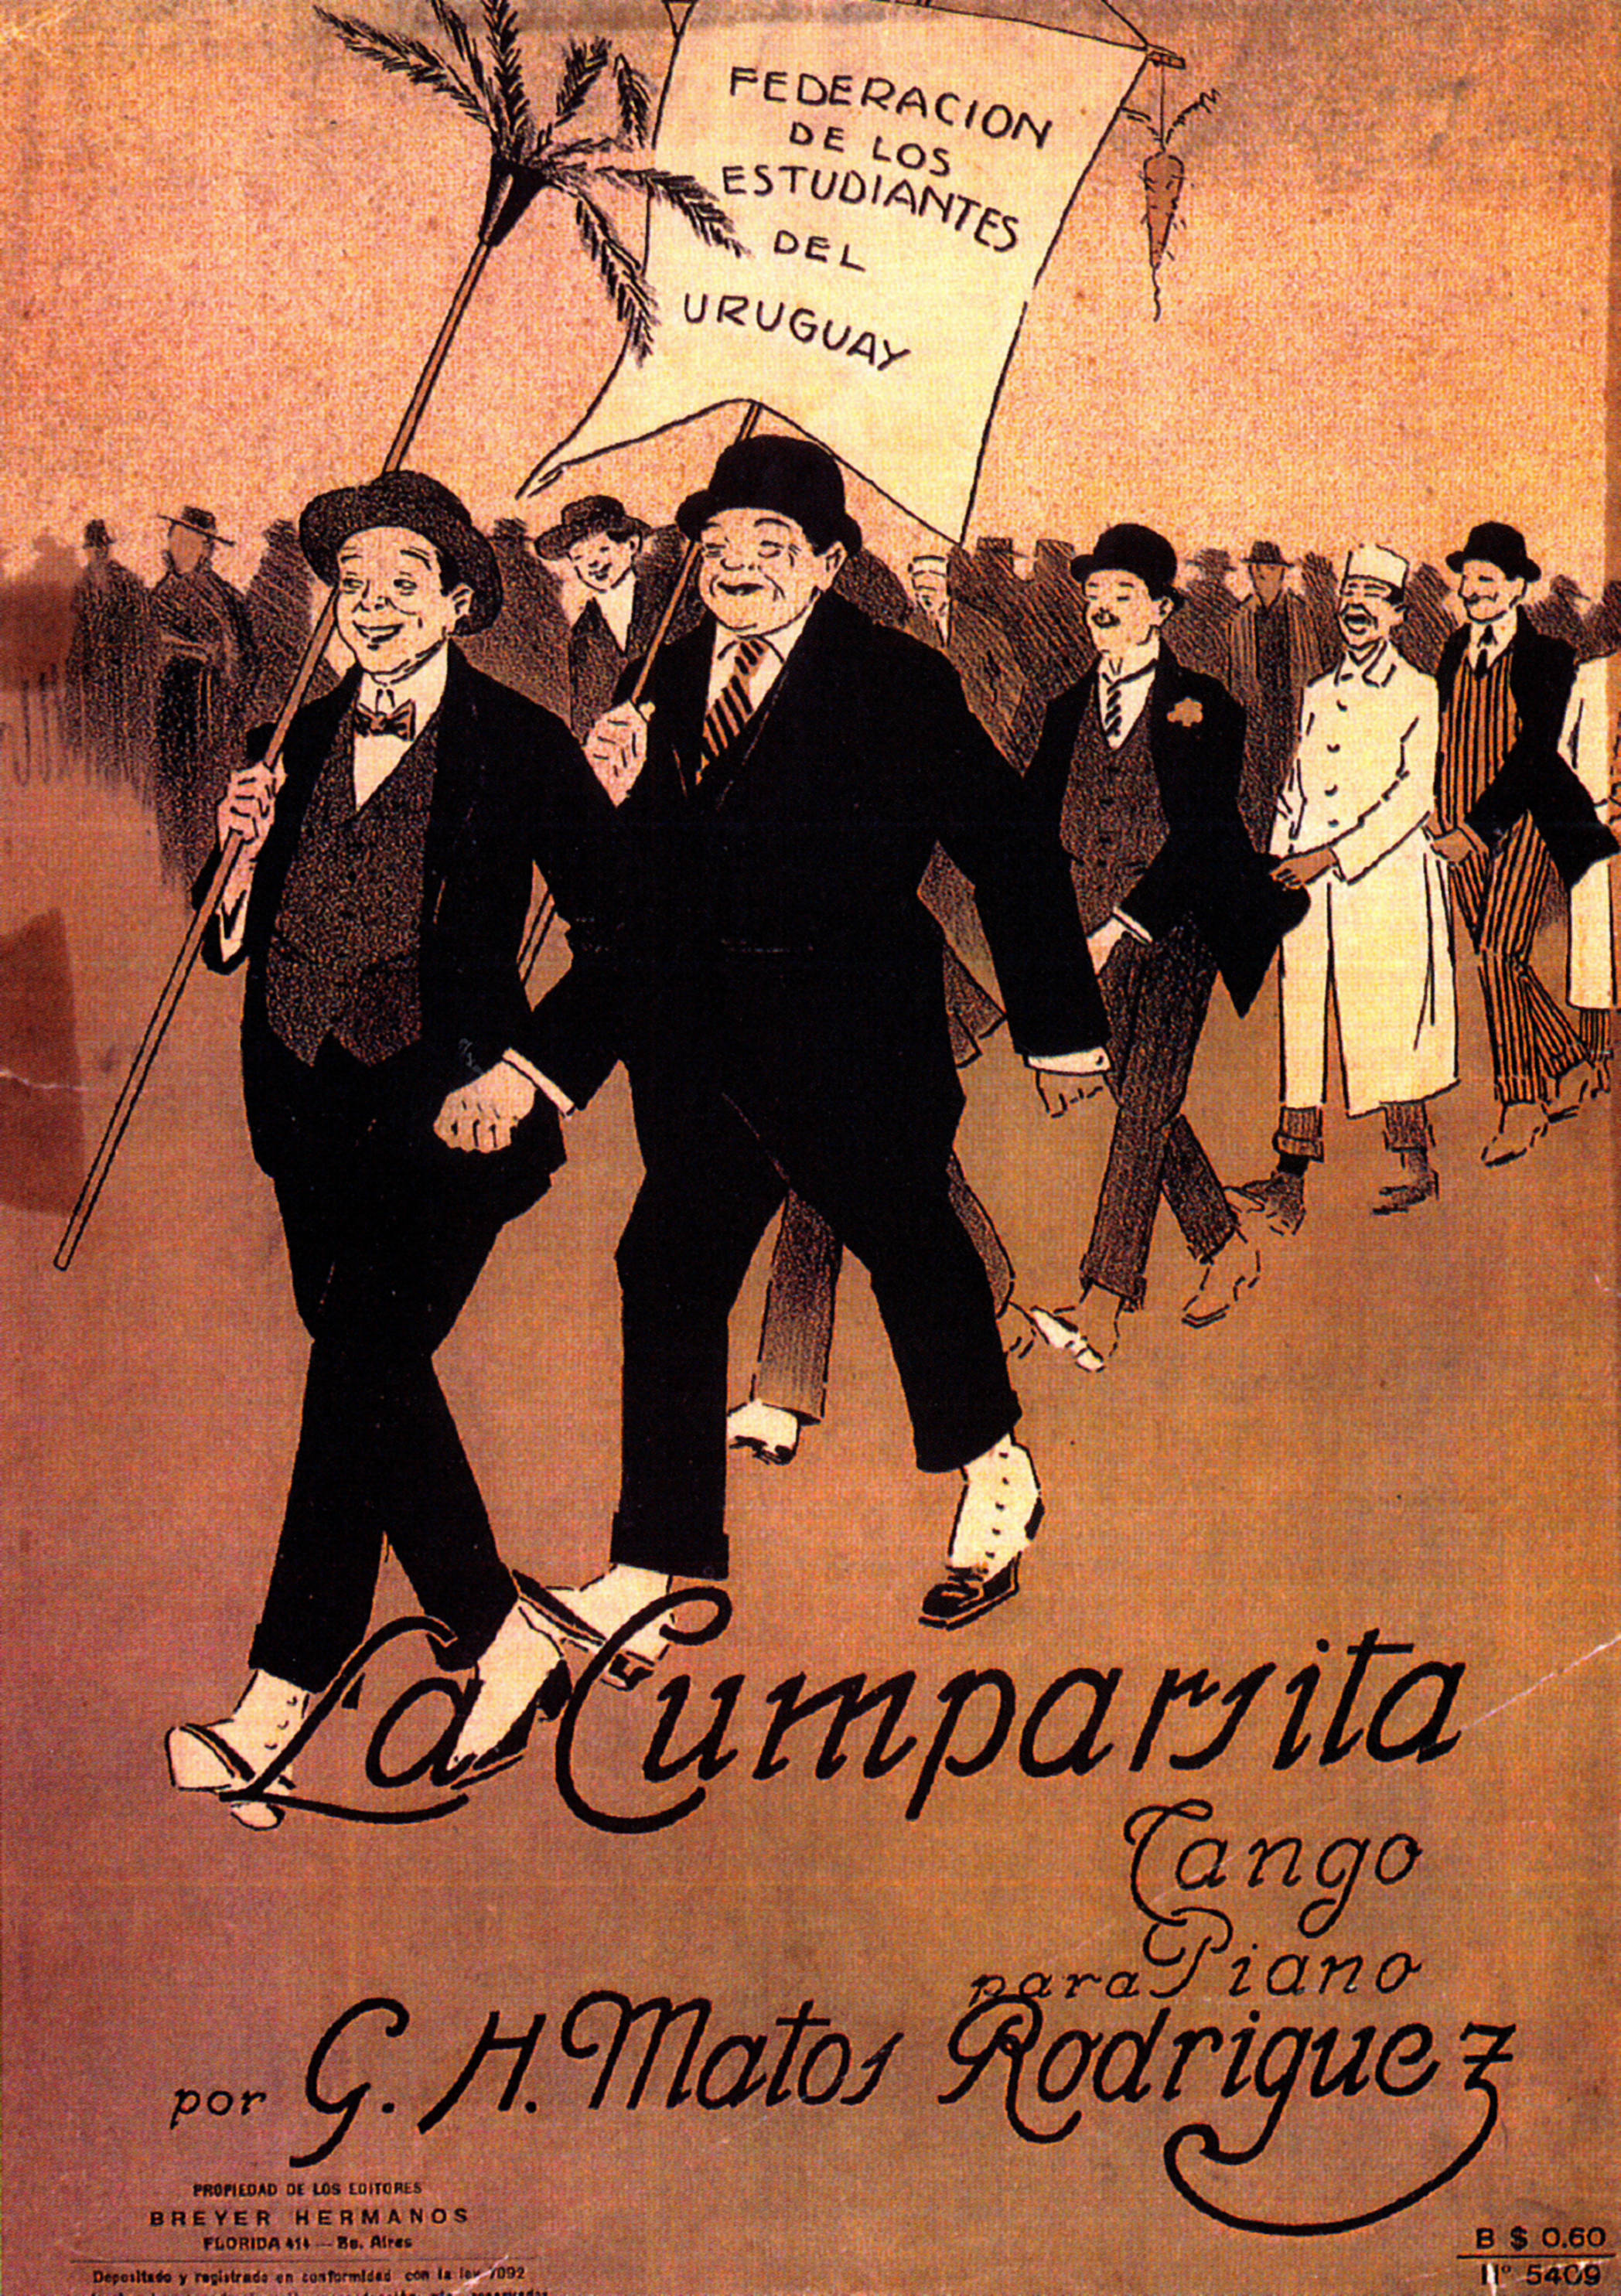 Partitura de La Cumparsita, 1917. Casa Breyer Hermanos